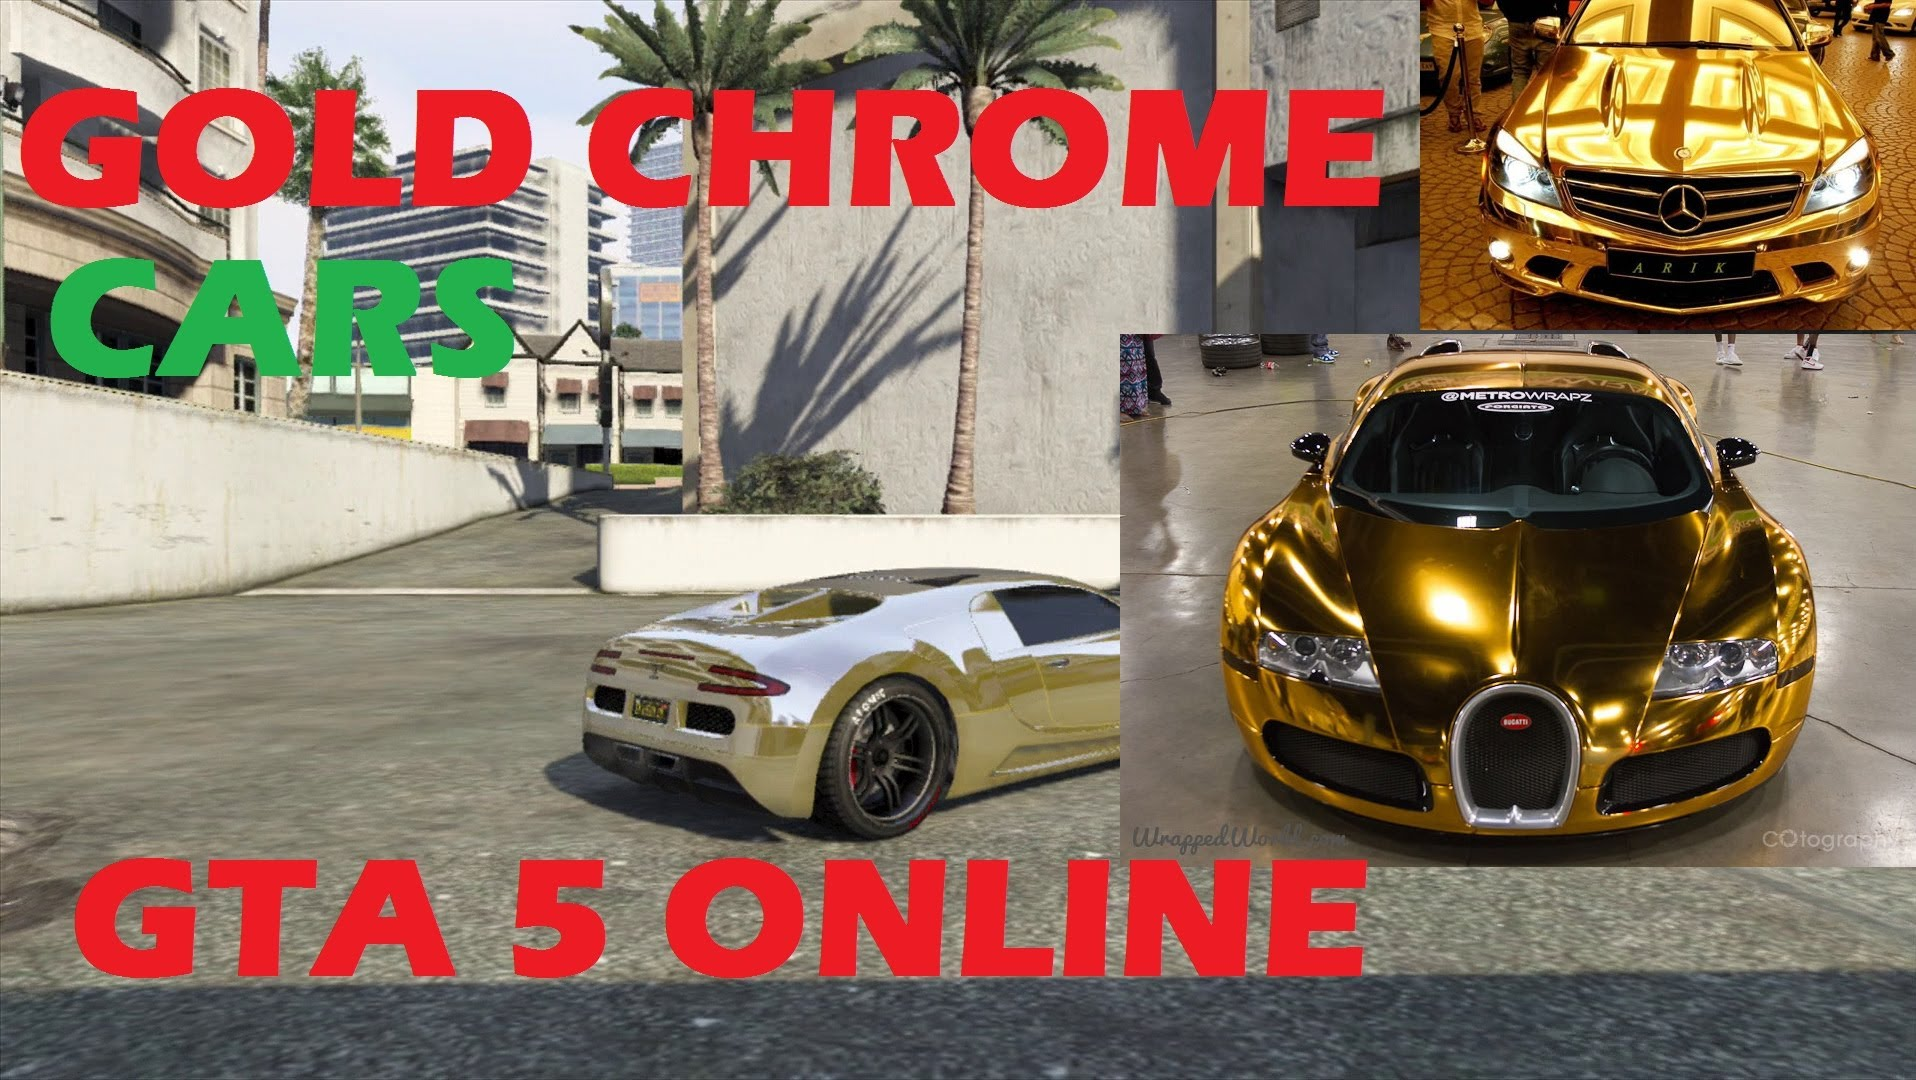 Gta 5 Cars Wallpaper Download Gta 5 Online Crew Colors